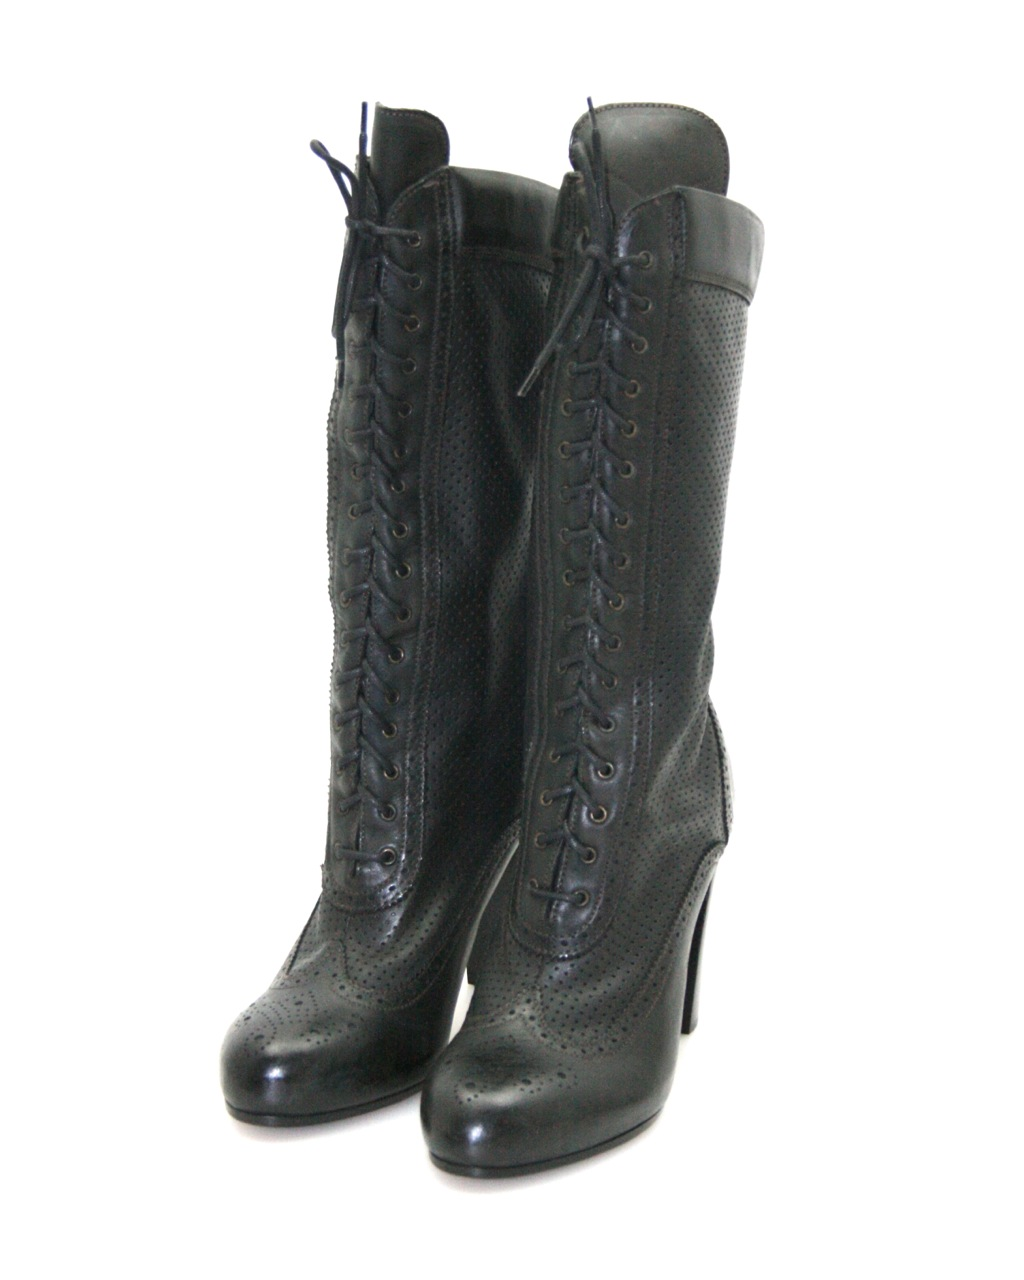 757627_new_agnes_ph_high_laced_boot_a_b